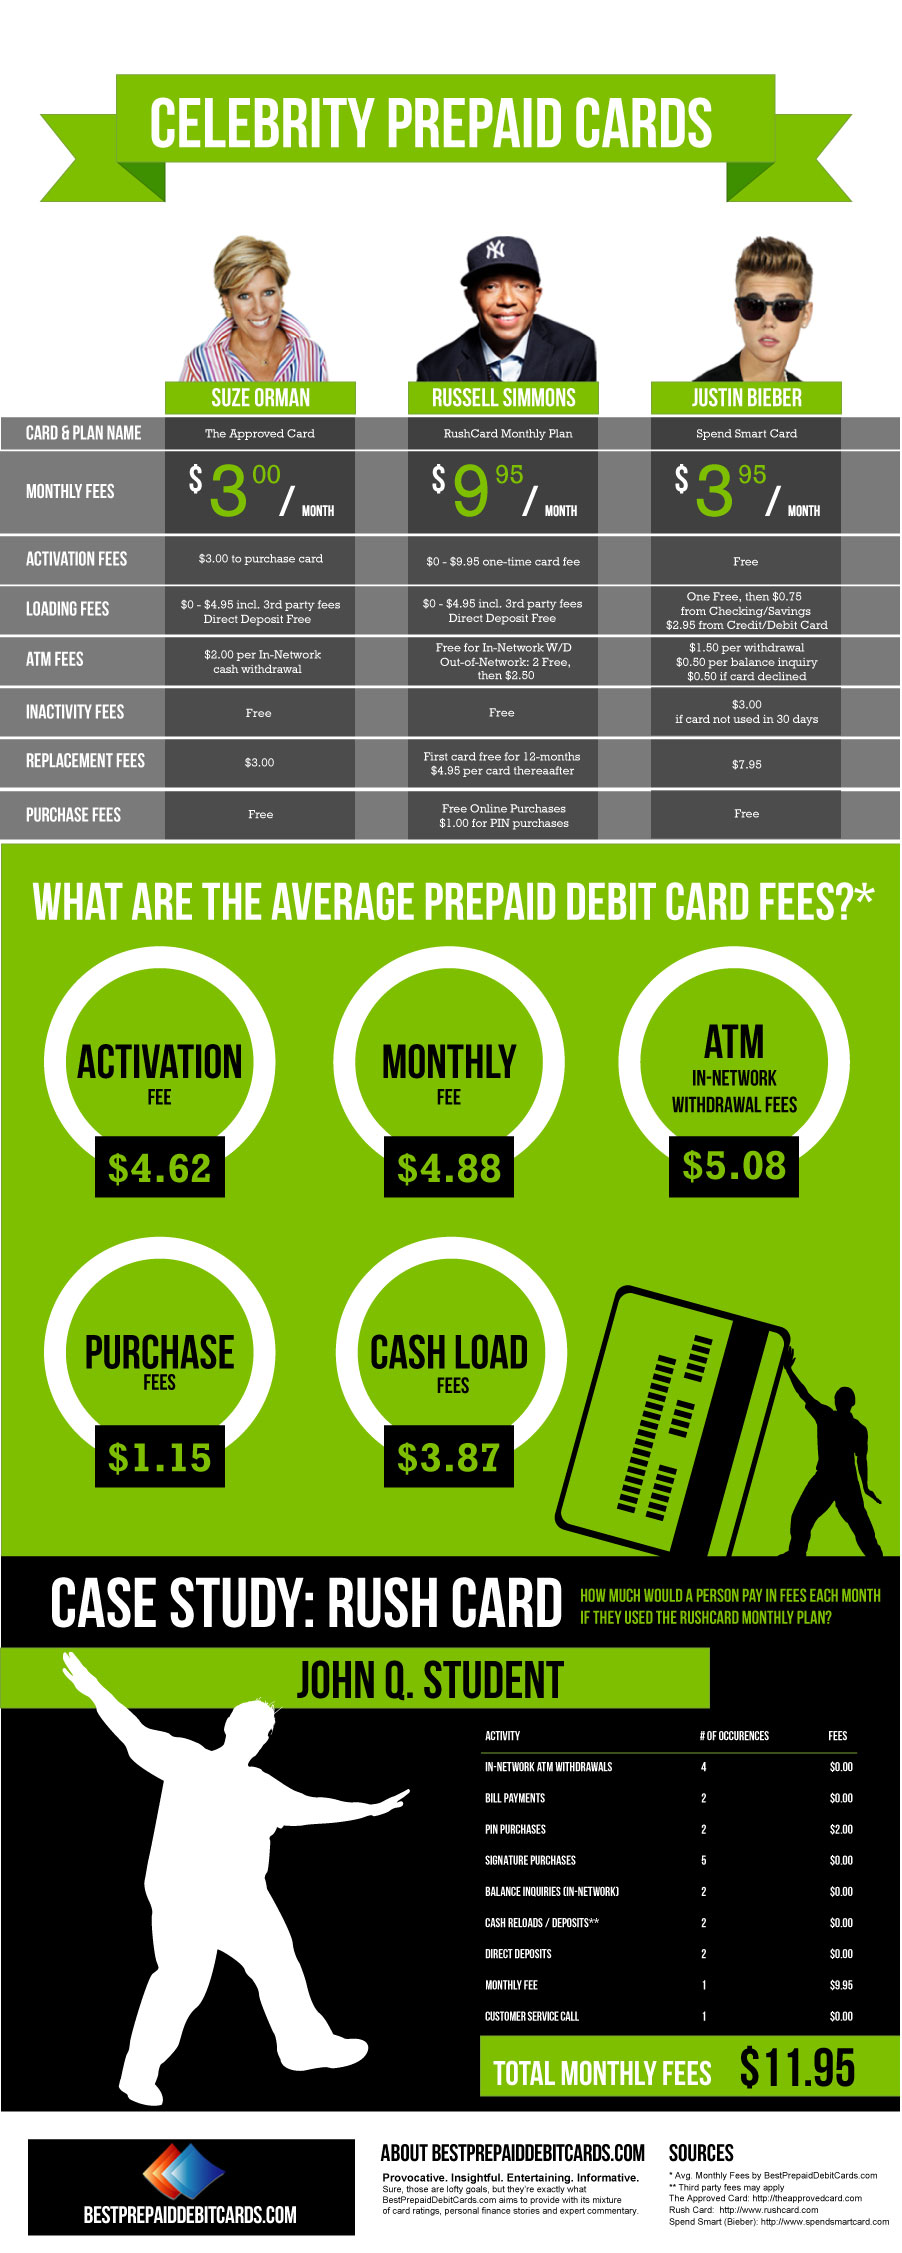 Celebrity Prepaid Debit Cards Infographic 2013